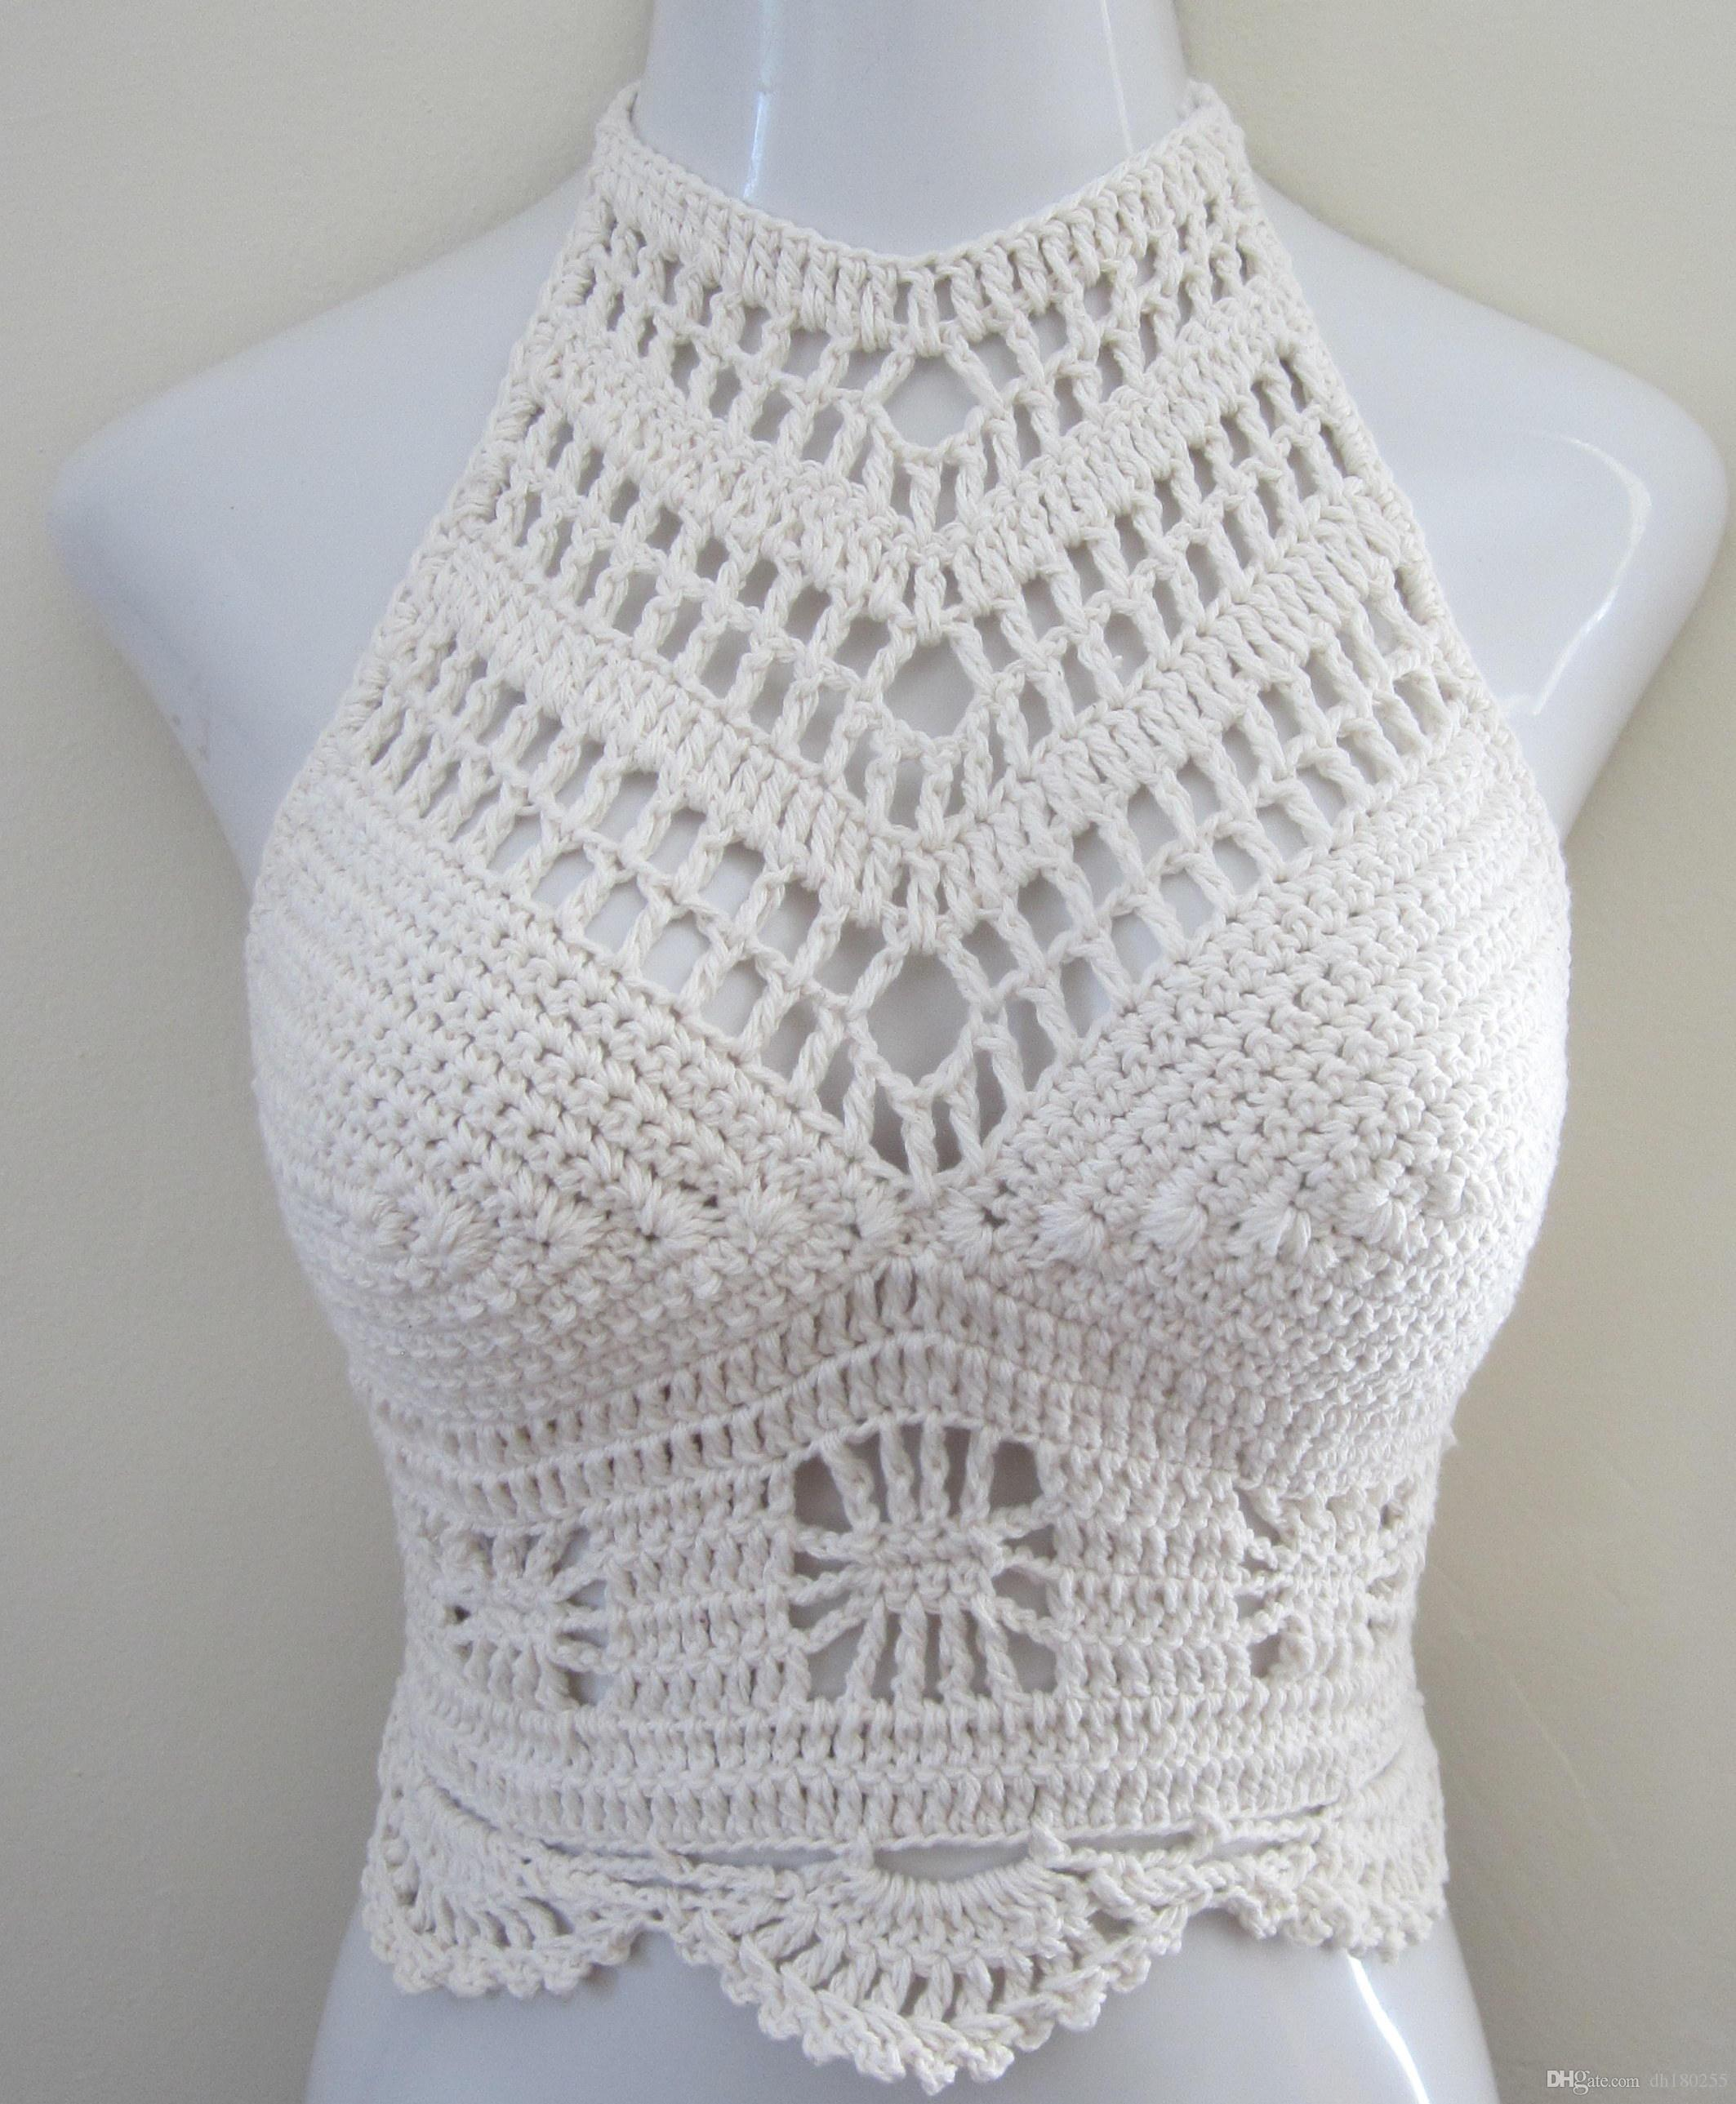 2019 White Crochet Top Crochet Halter Tops Festival Halter Top Festival Clothing Gypsy Clothing Boho Top Beachwear Spider Top Gypsy Top From